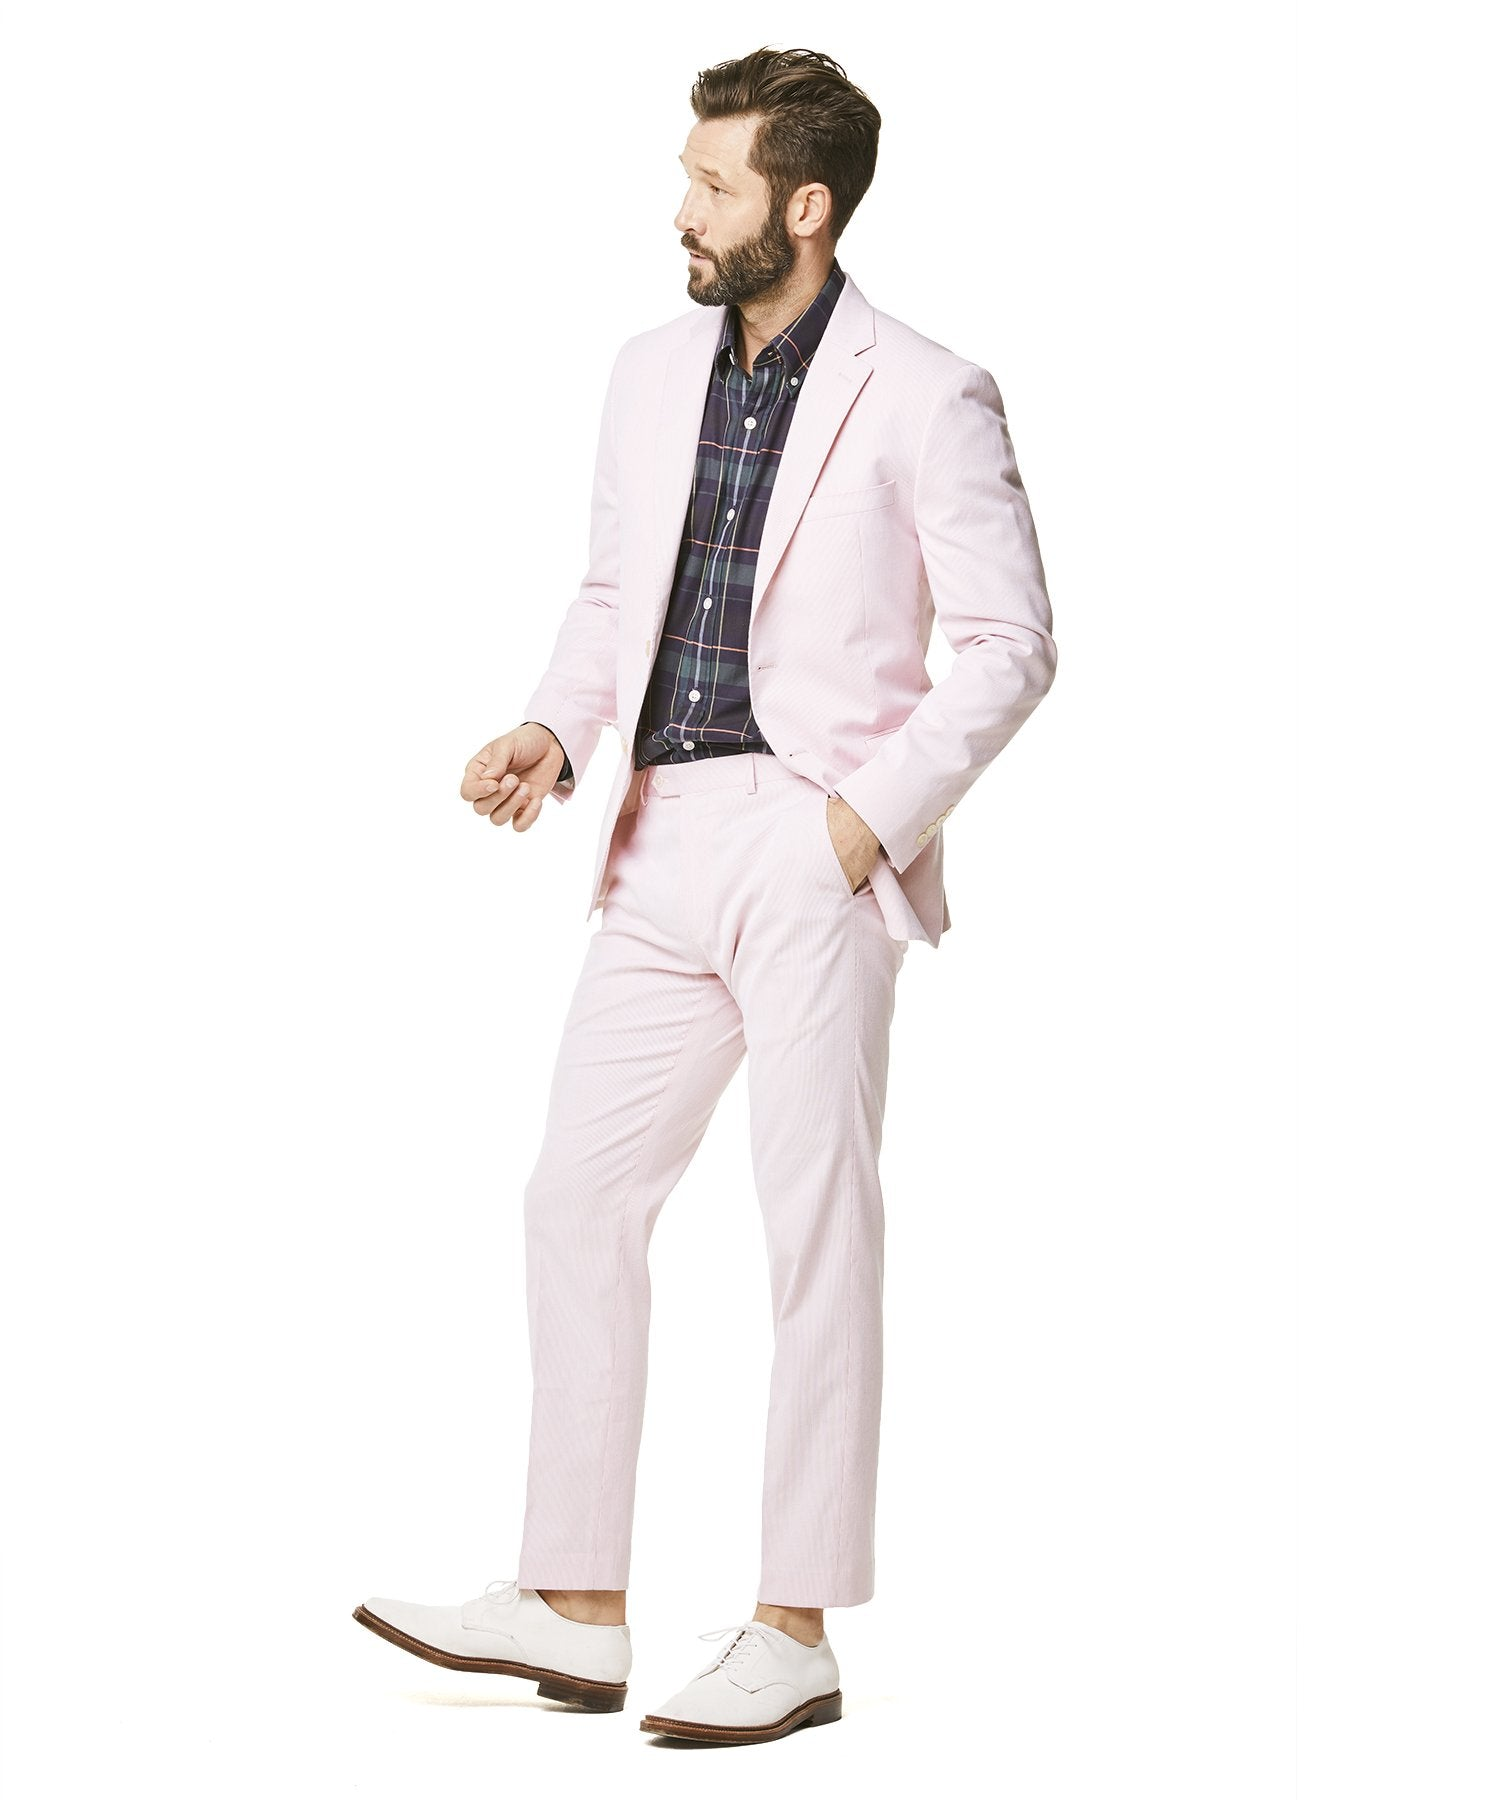 Todd Snyder White Label Fine Corded Cotton Stripe Sutton Suit in Pink